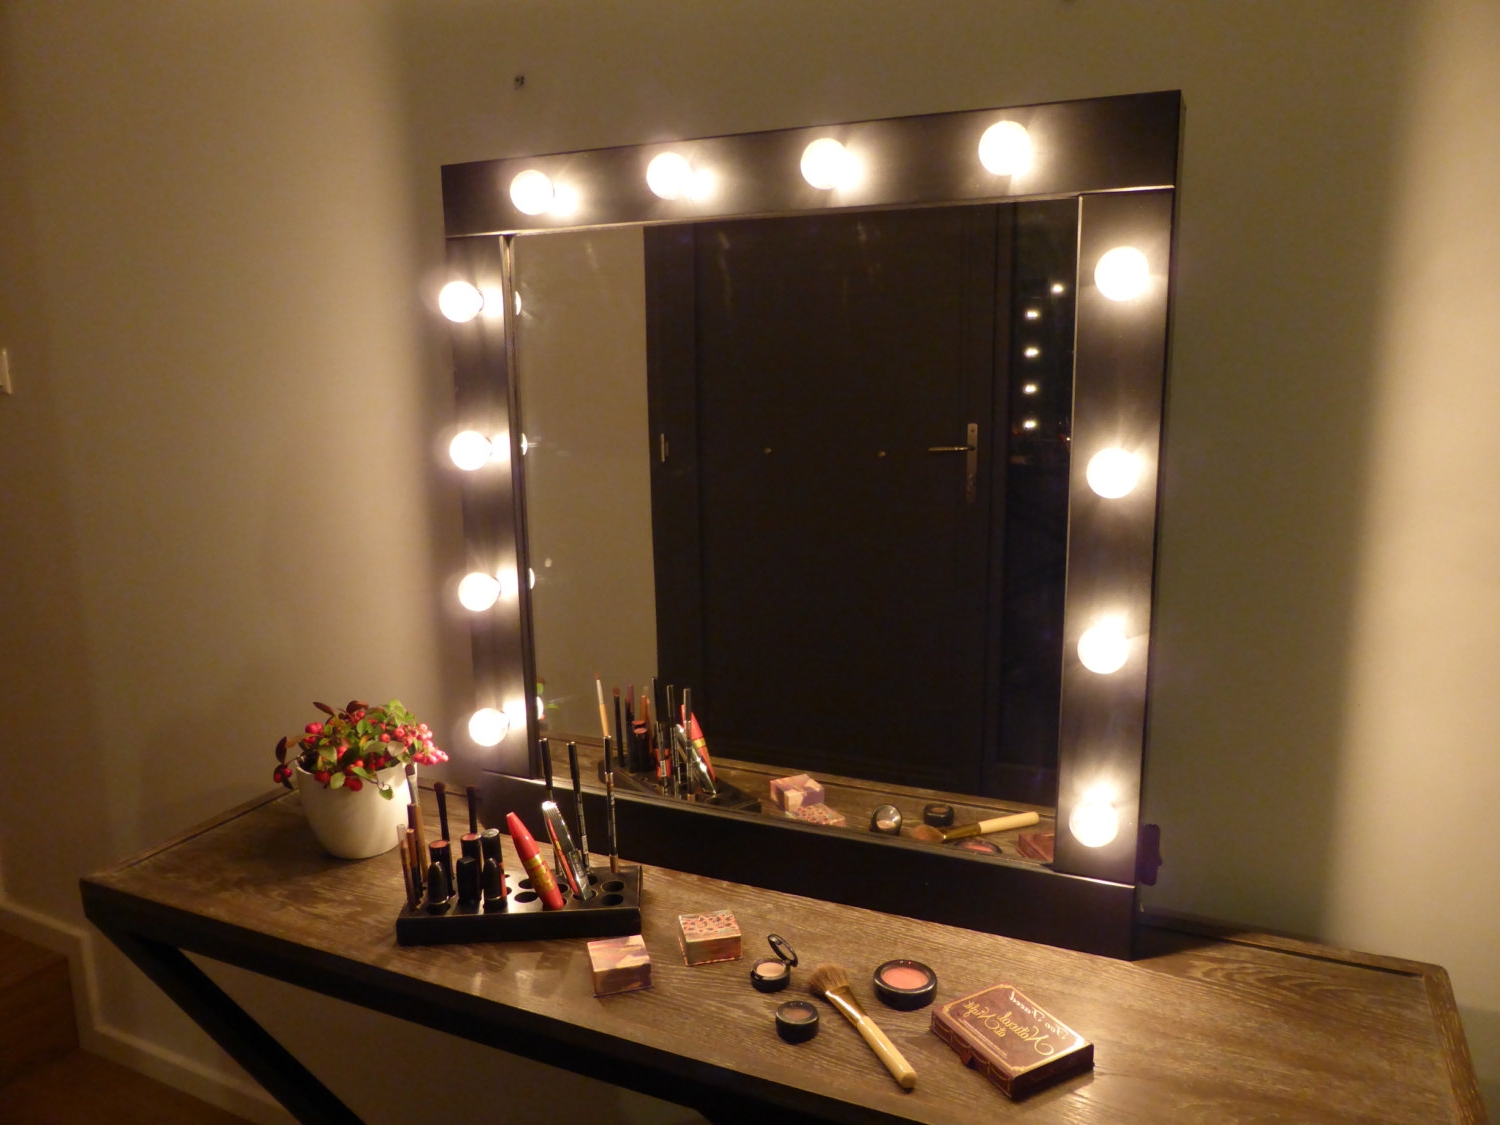 Cosmetic Wall Mirrors Throughout Popular Vanity Wall Mirror With Lights – A Great Way To Light Up Your Space (View 17 of 20)